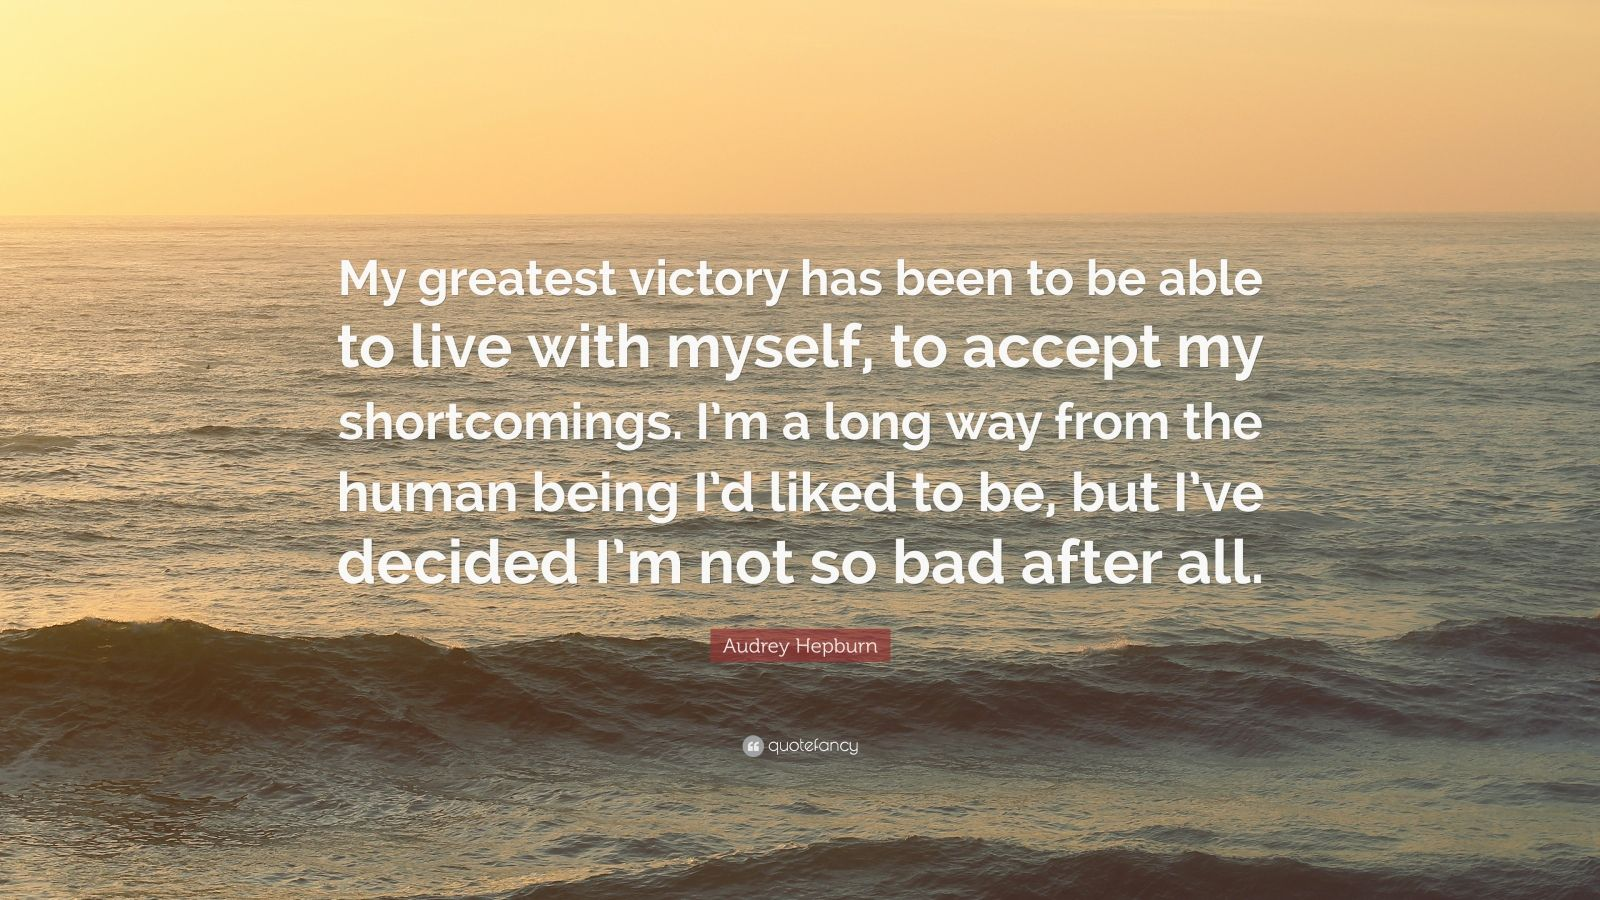 """Audrey Hepburn Quote: """"My greatest victory has been to be able to live with myself, to accept my shortcomings. I'm a long way from the human being I'd liked to be, but I've decided I'm not so bad after all."""""""